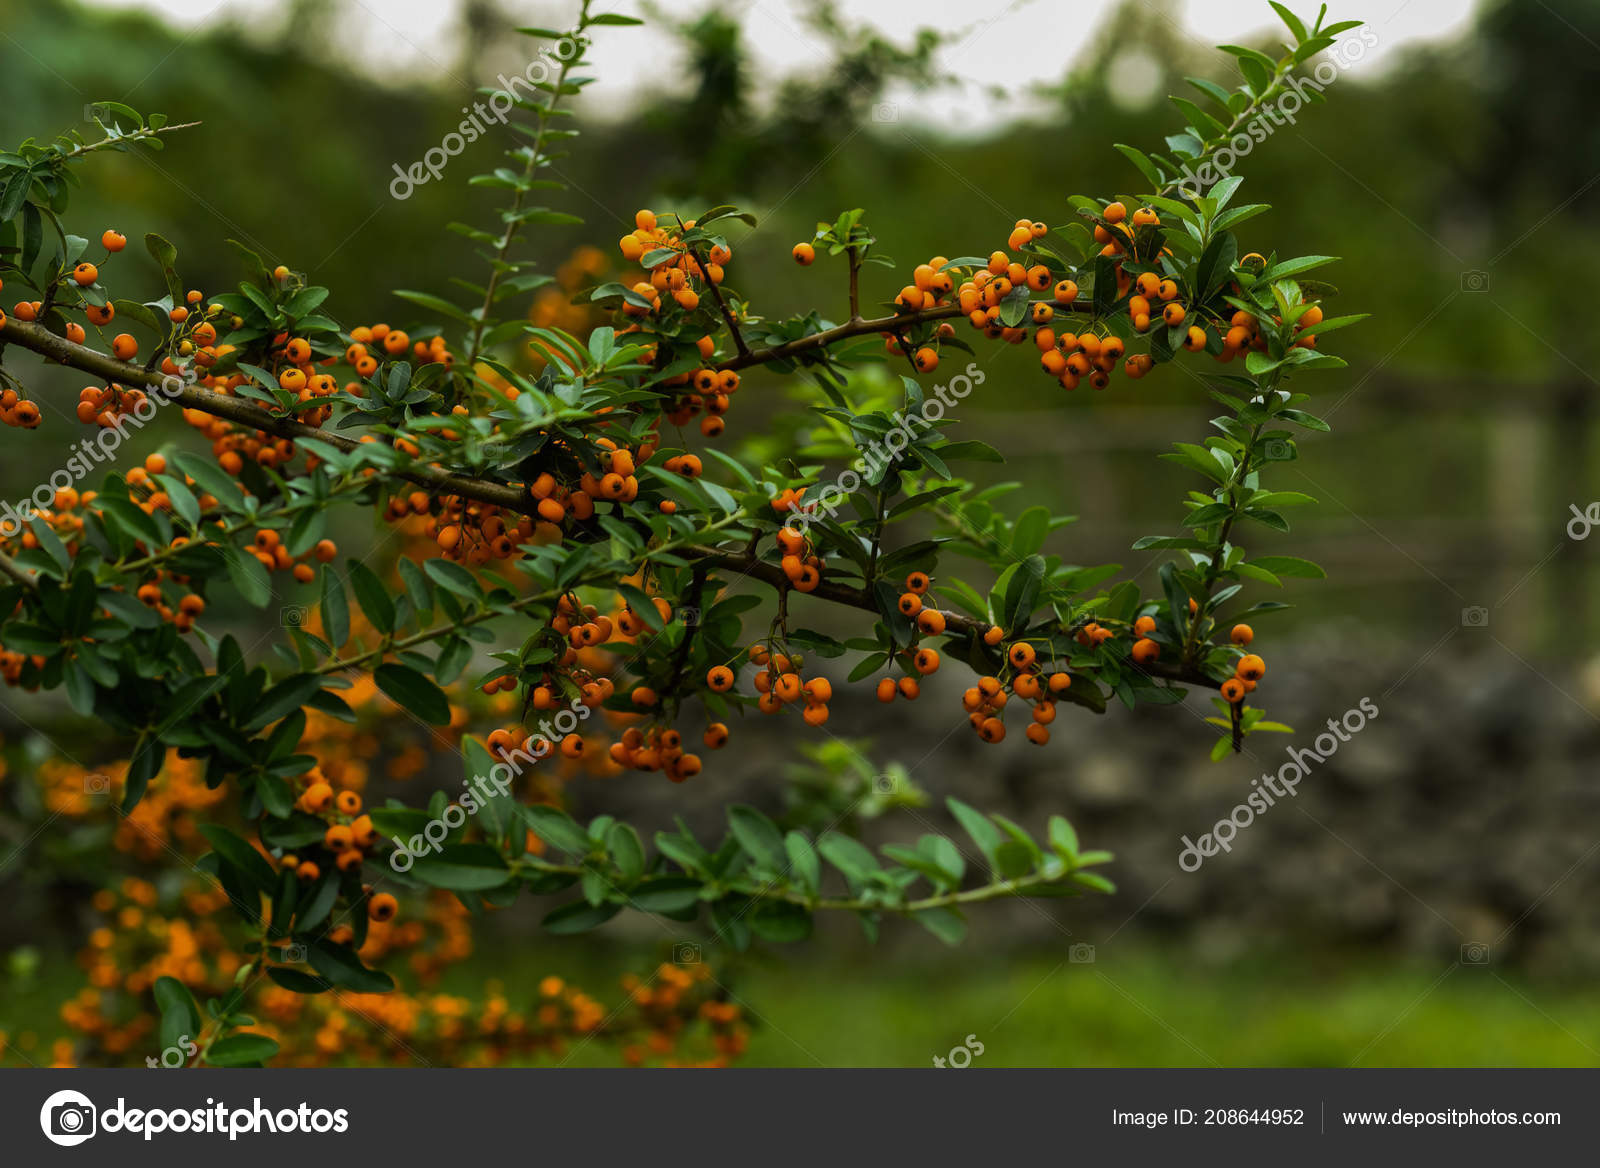 Autumn Berries Leaves Blurred Trees Background Fall Background